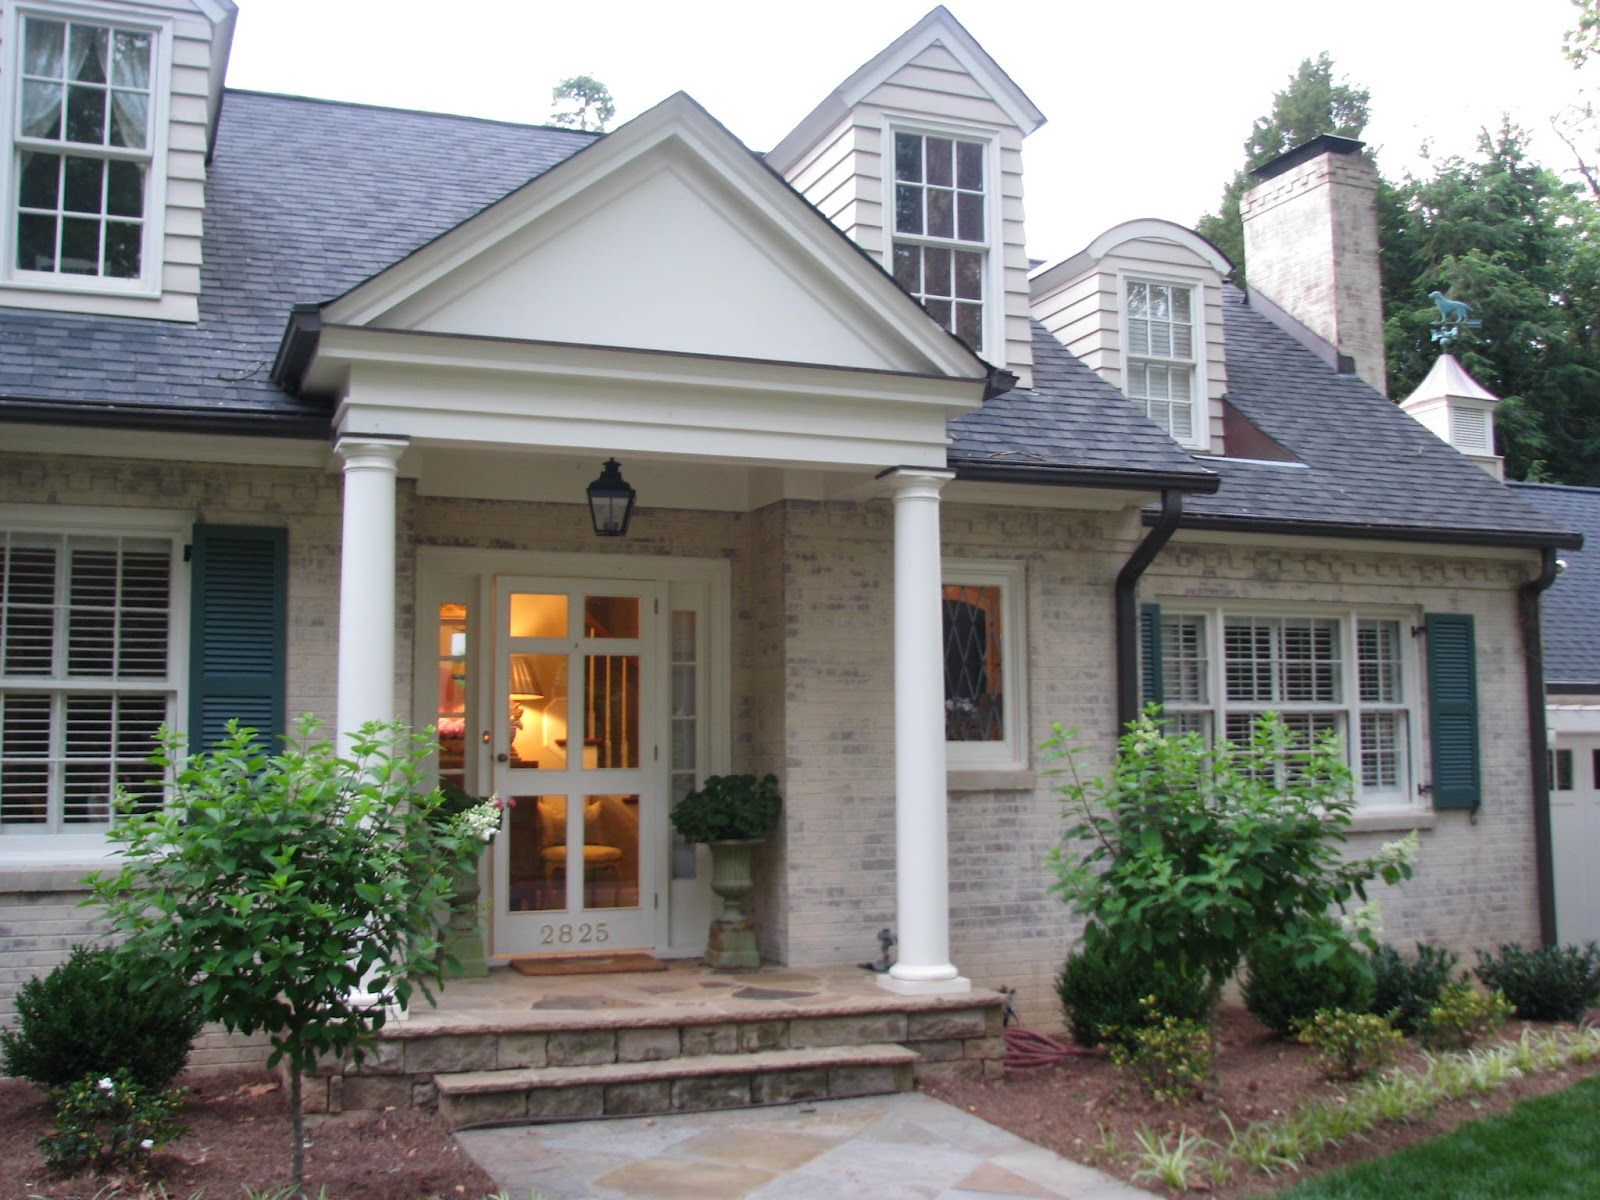 Classic Colonial Cottage Whitewashed Brick Teal